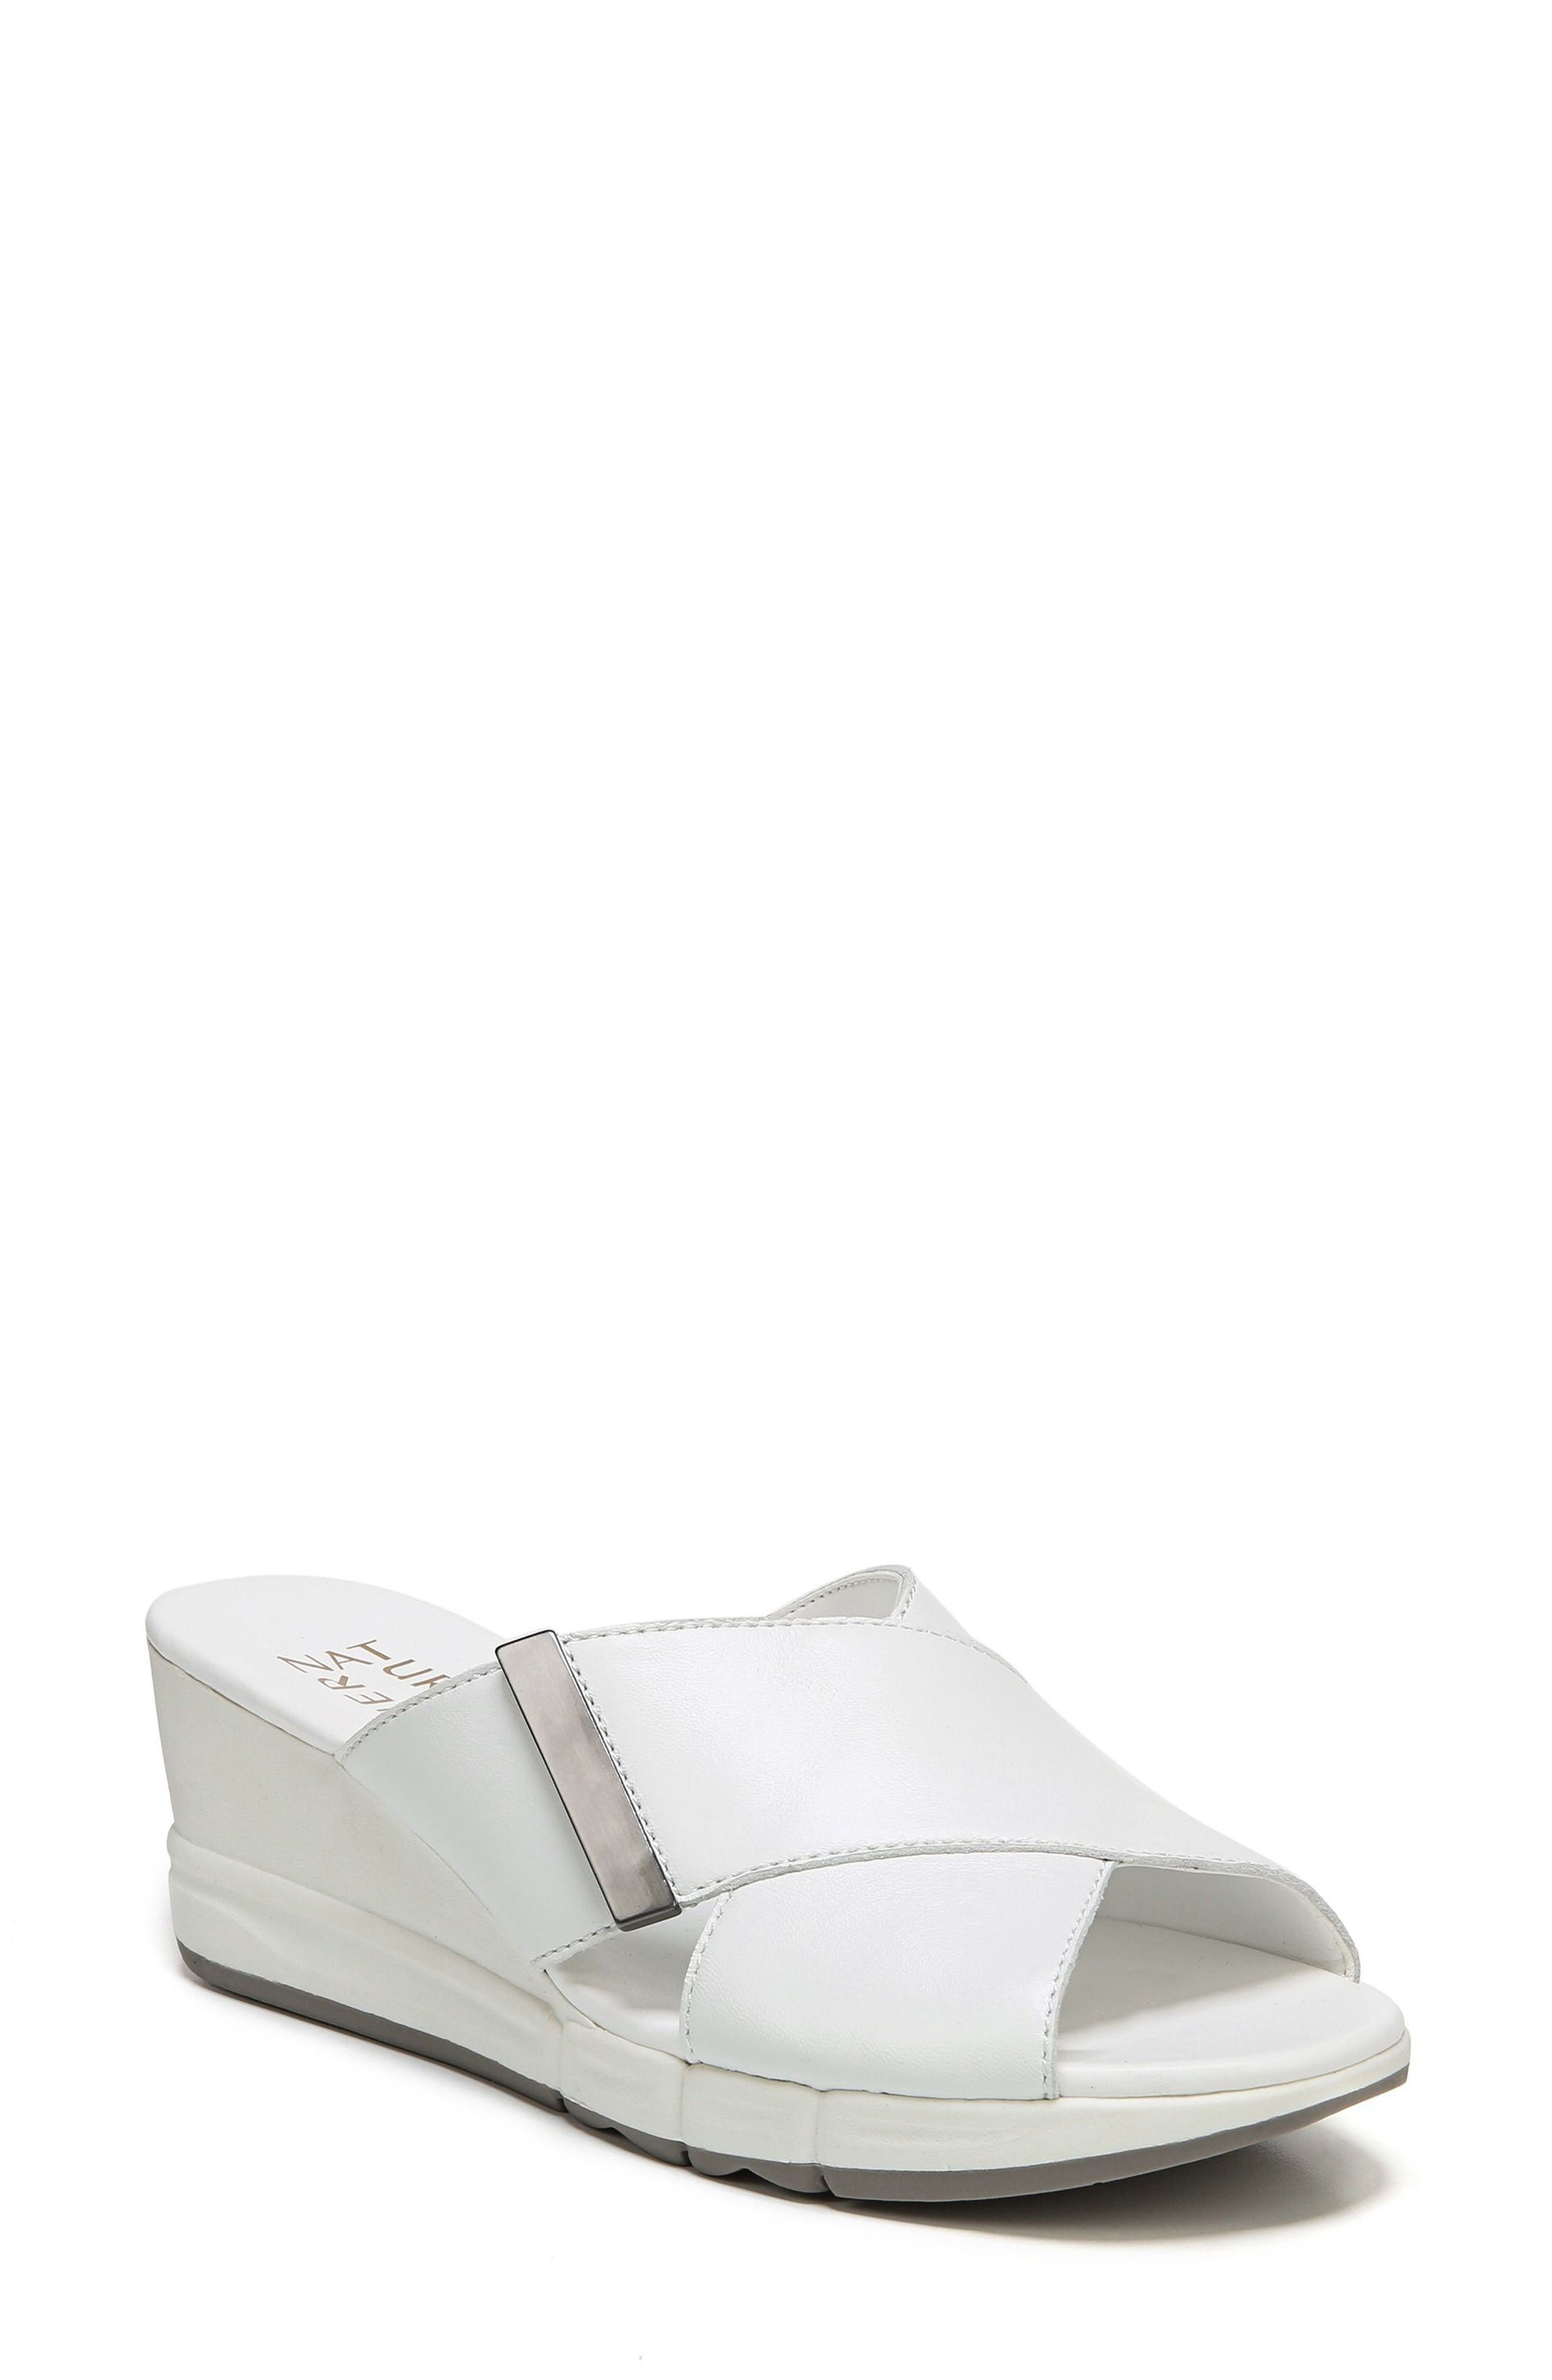 Izzy Wedge Sandal,                         Main,                         color, White Leather